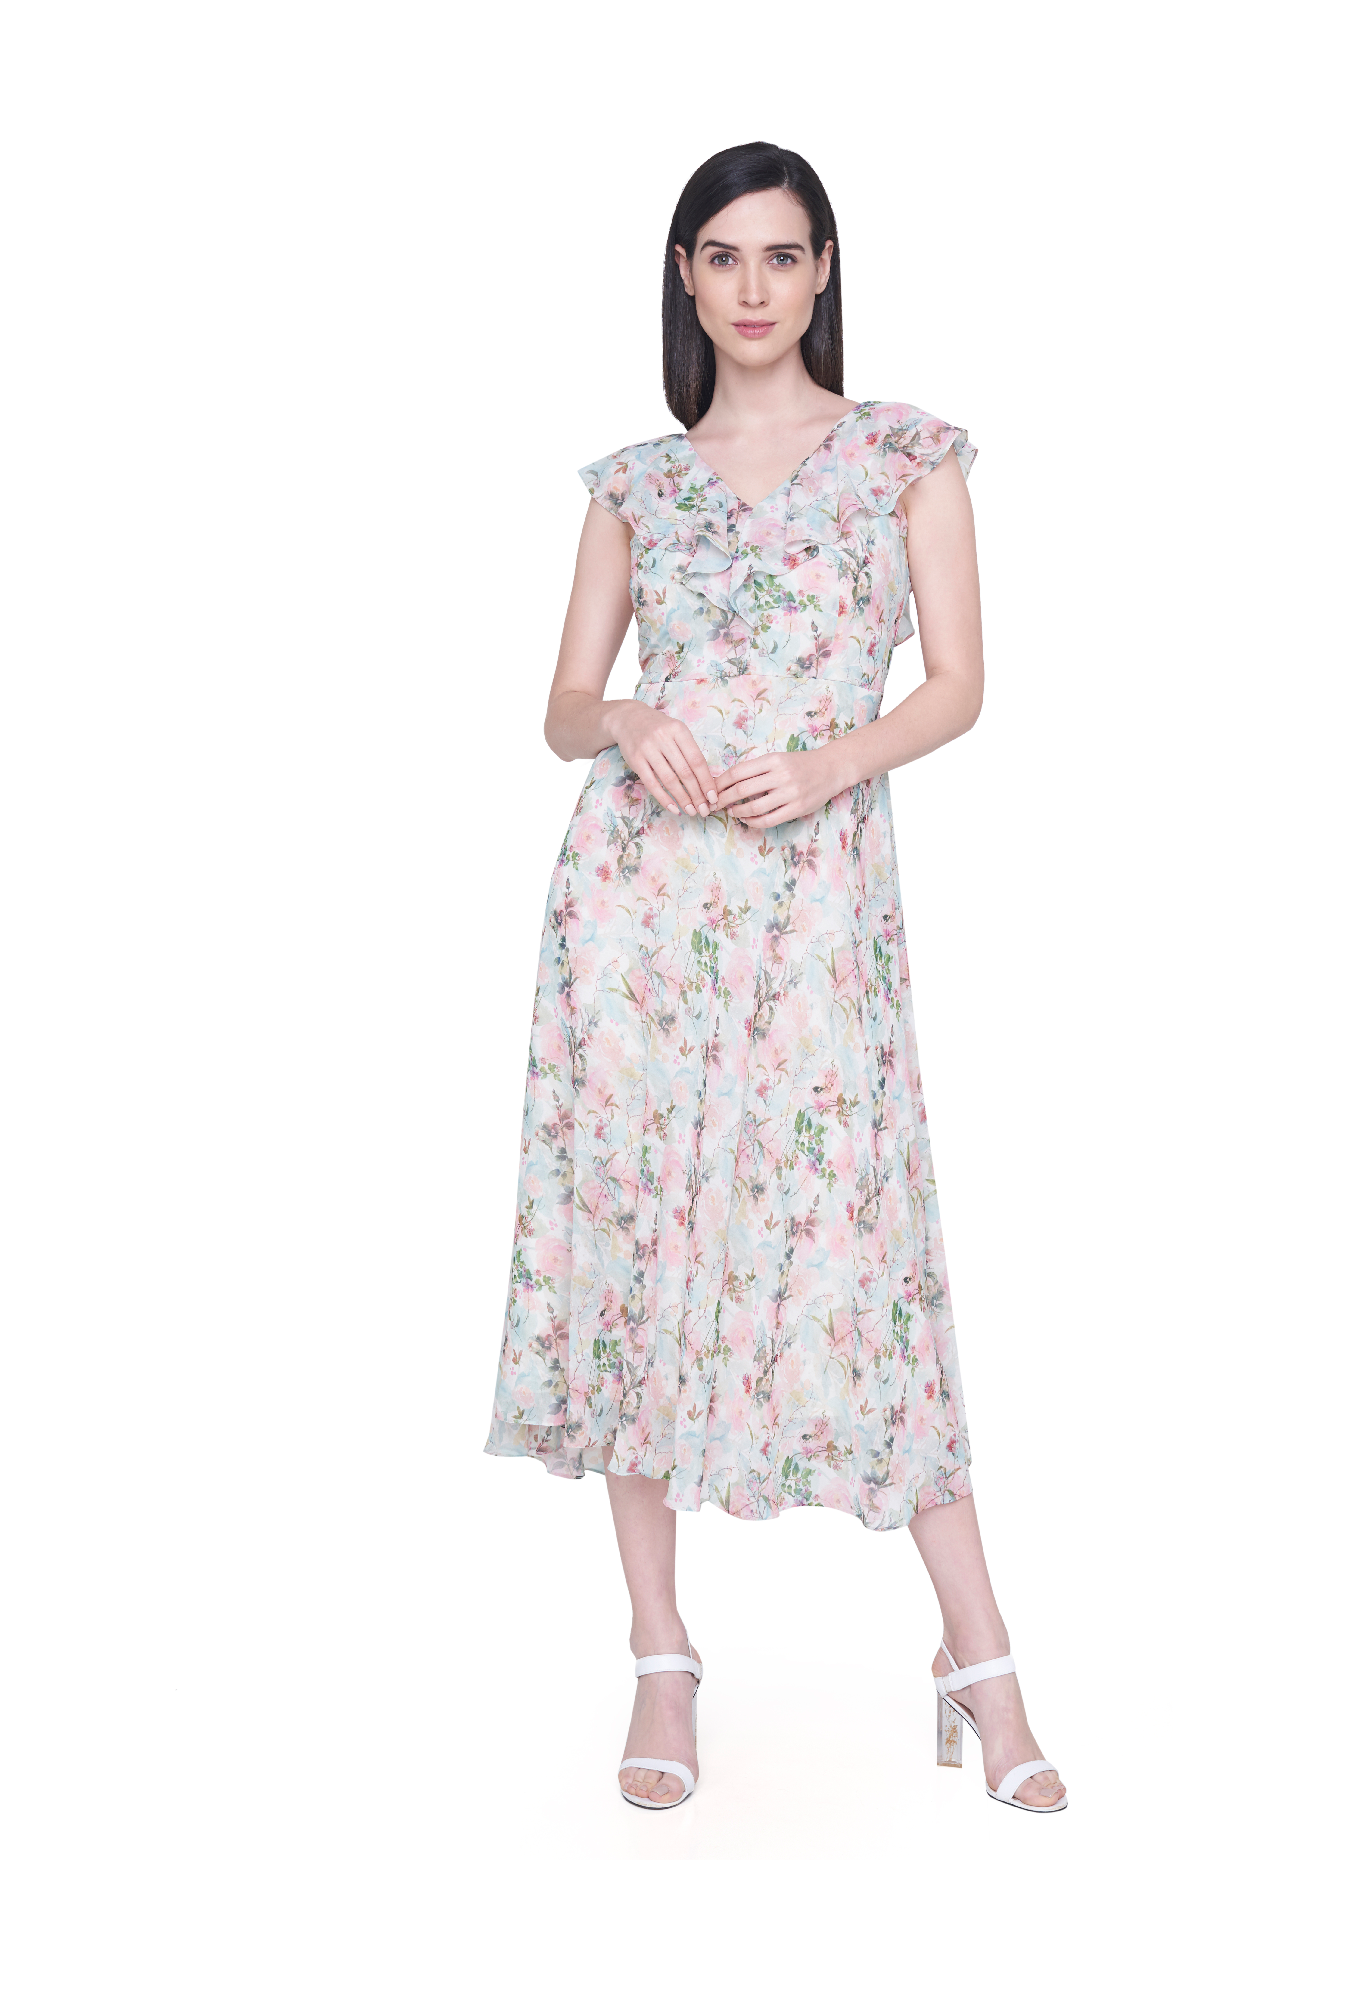 663cc476bc41 Buy AND Green   Pink Floral Print Below Knee Dress for Women ...